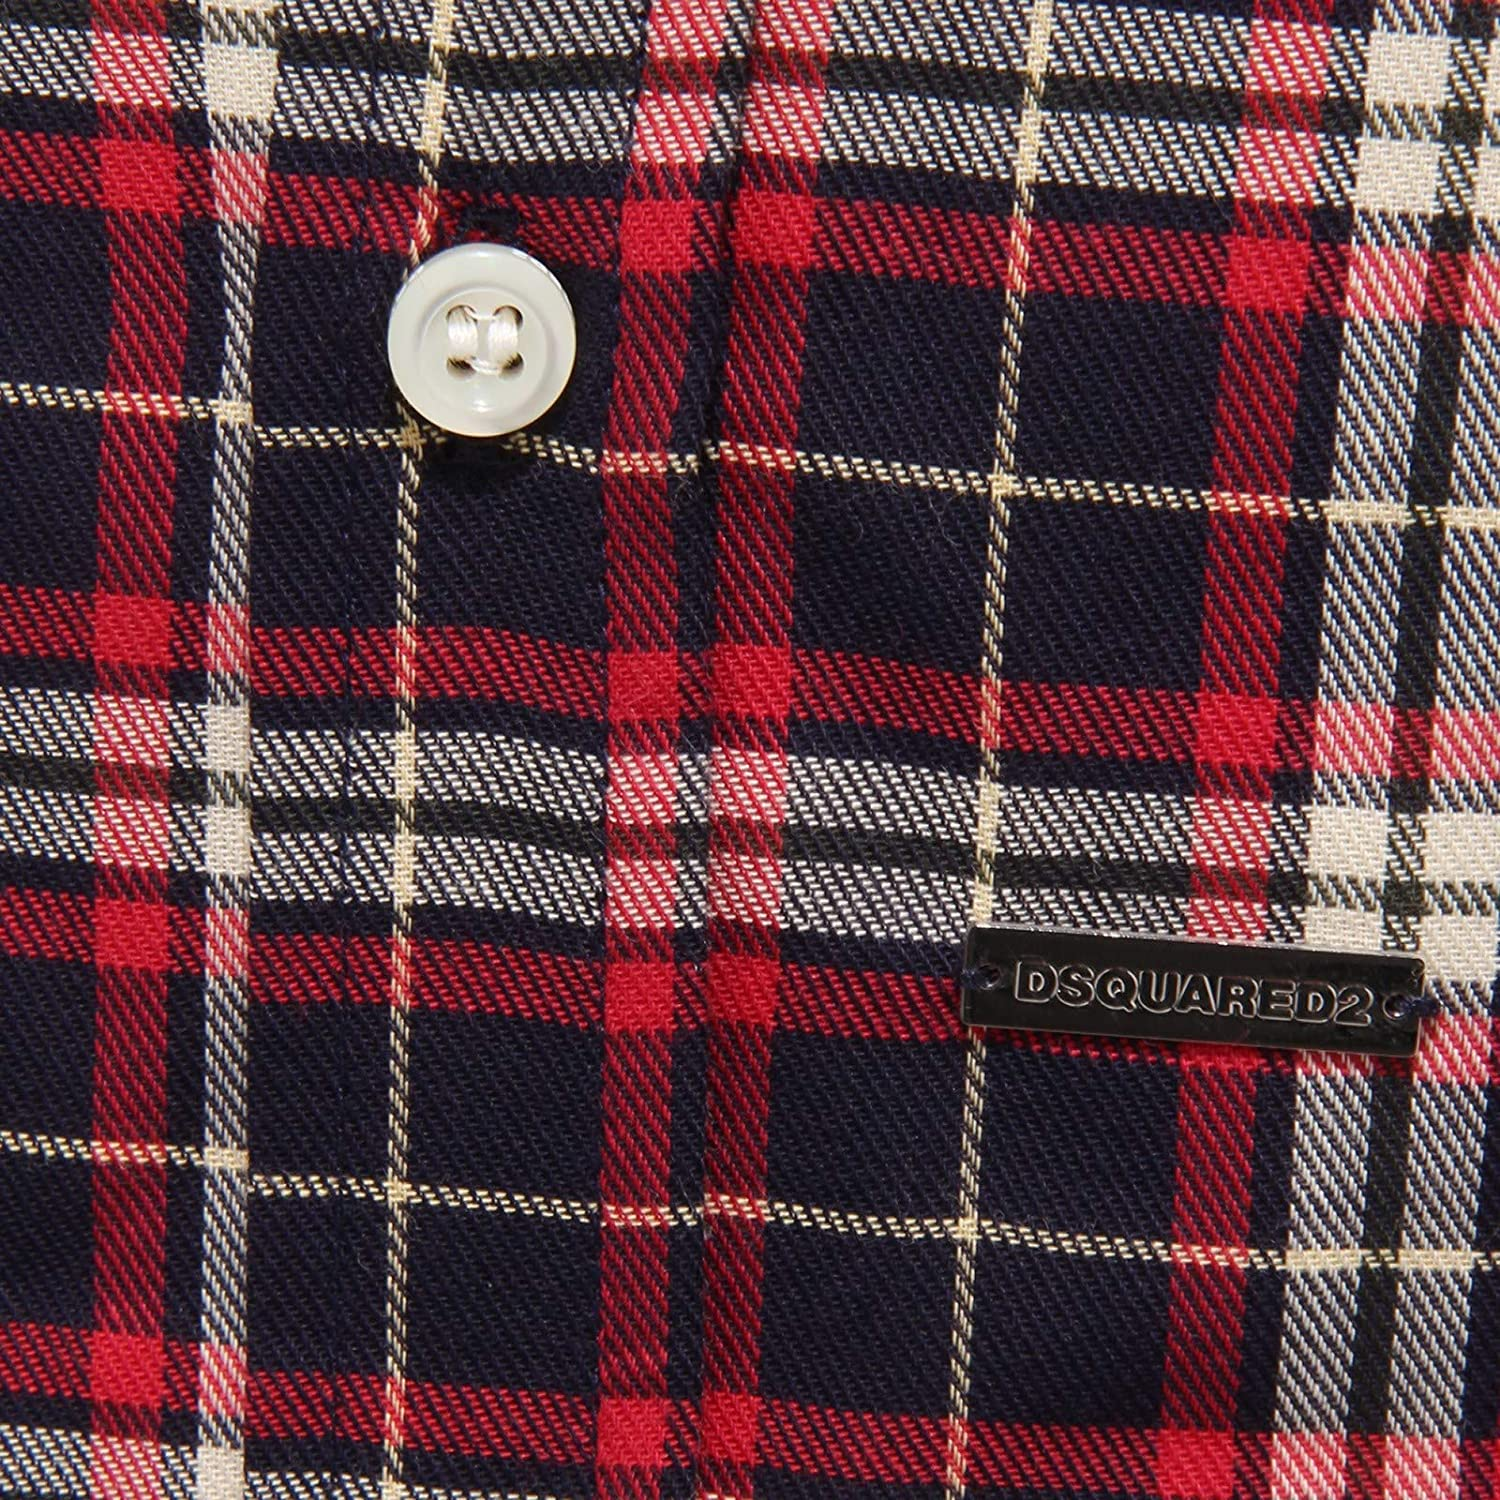 DSQUARED2 7543Y Camicia Bimbo Boy Cotton Red//Blue//White Shirt Long Sleeve